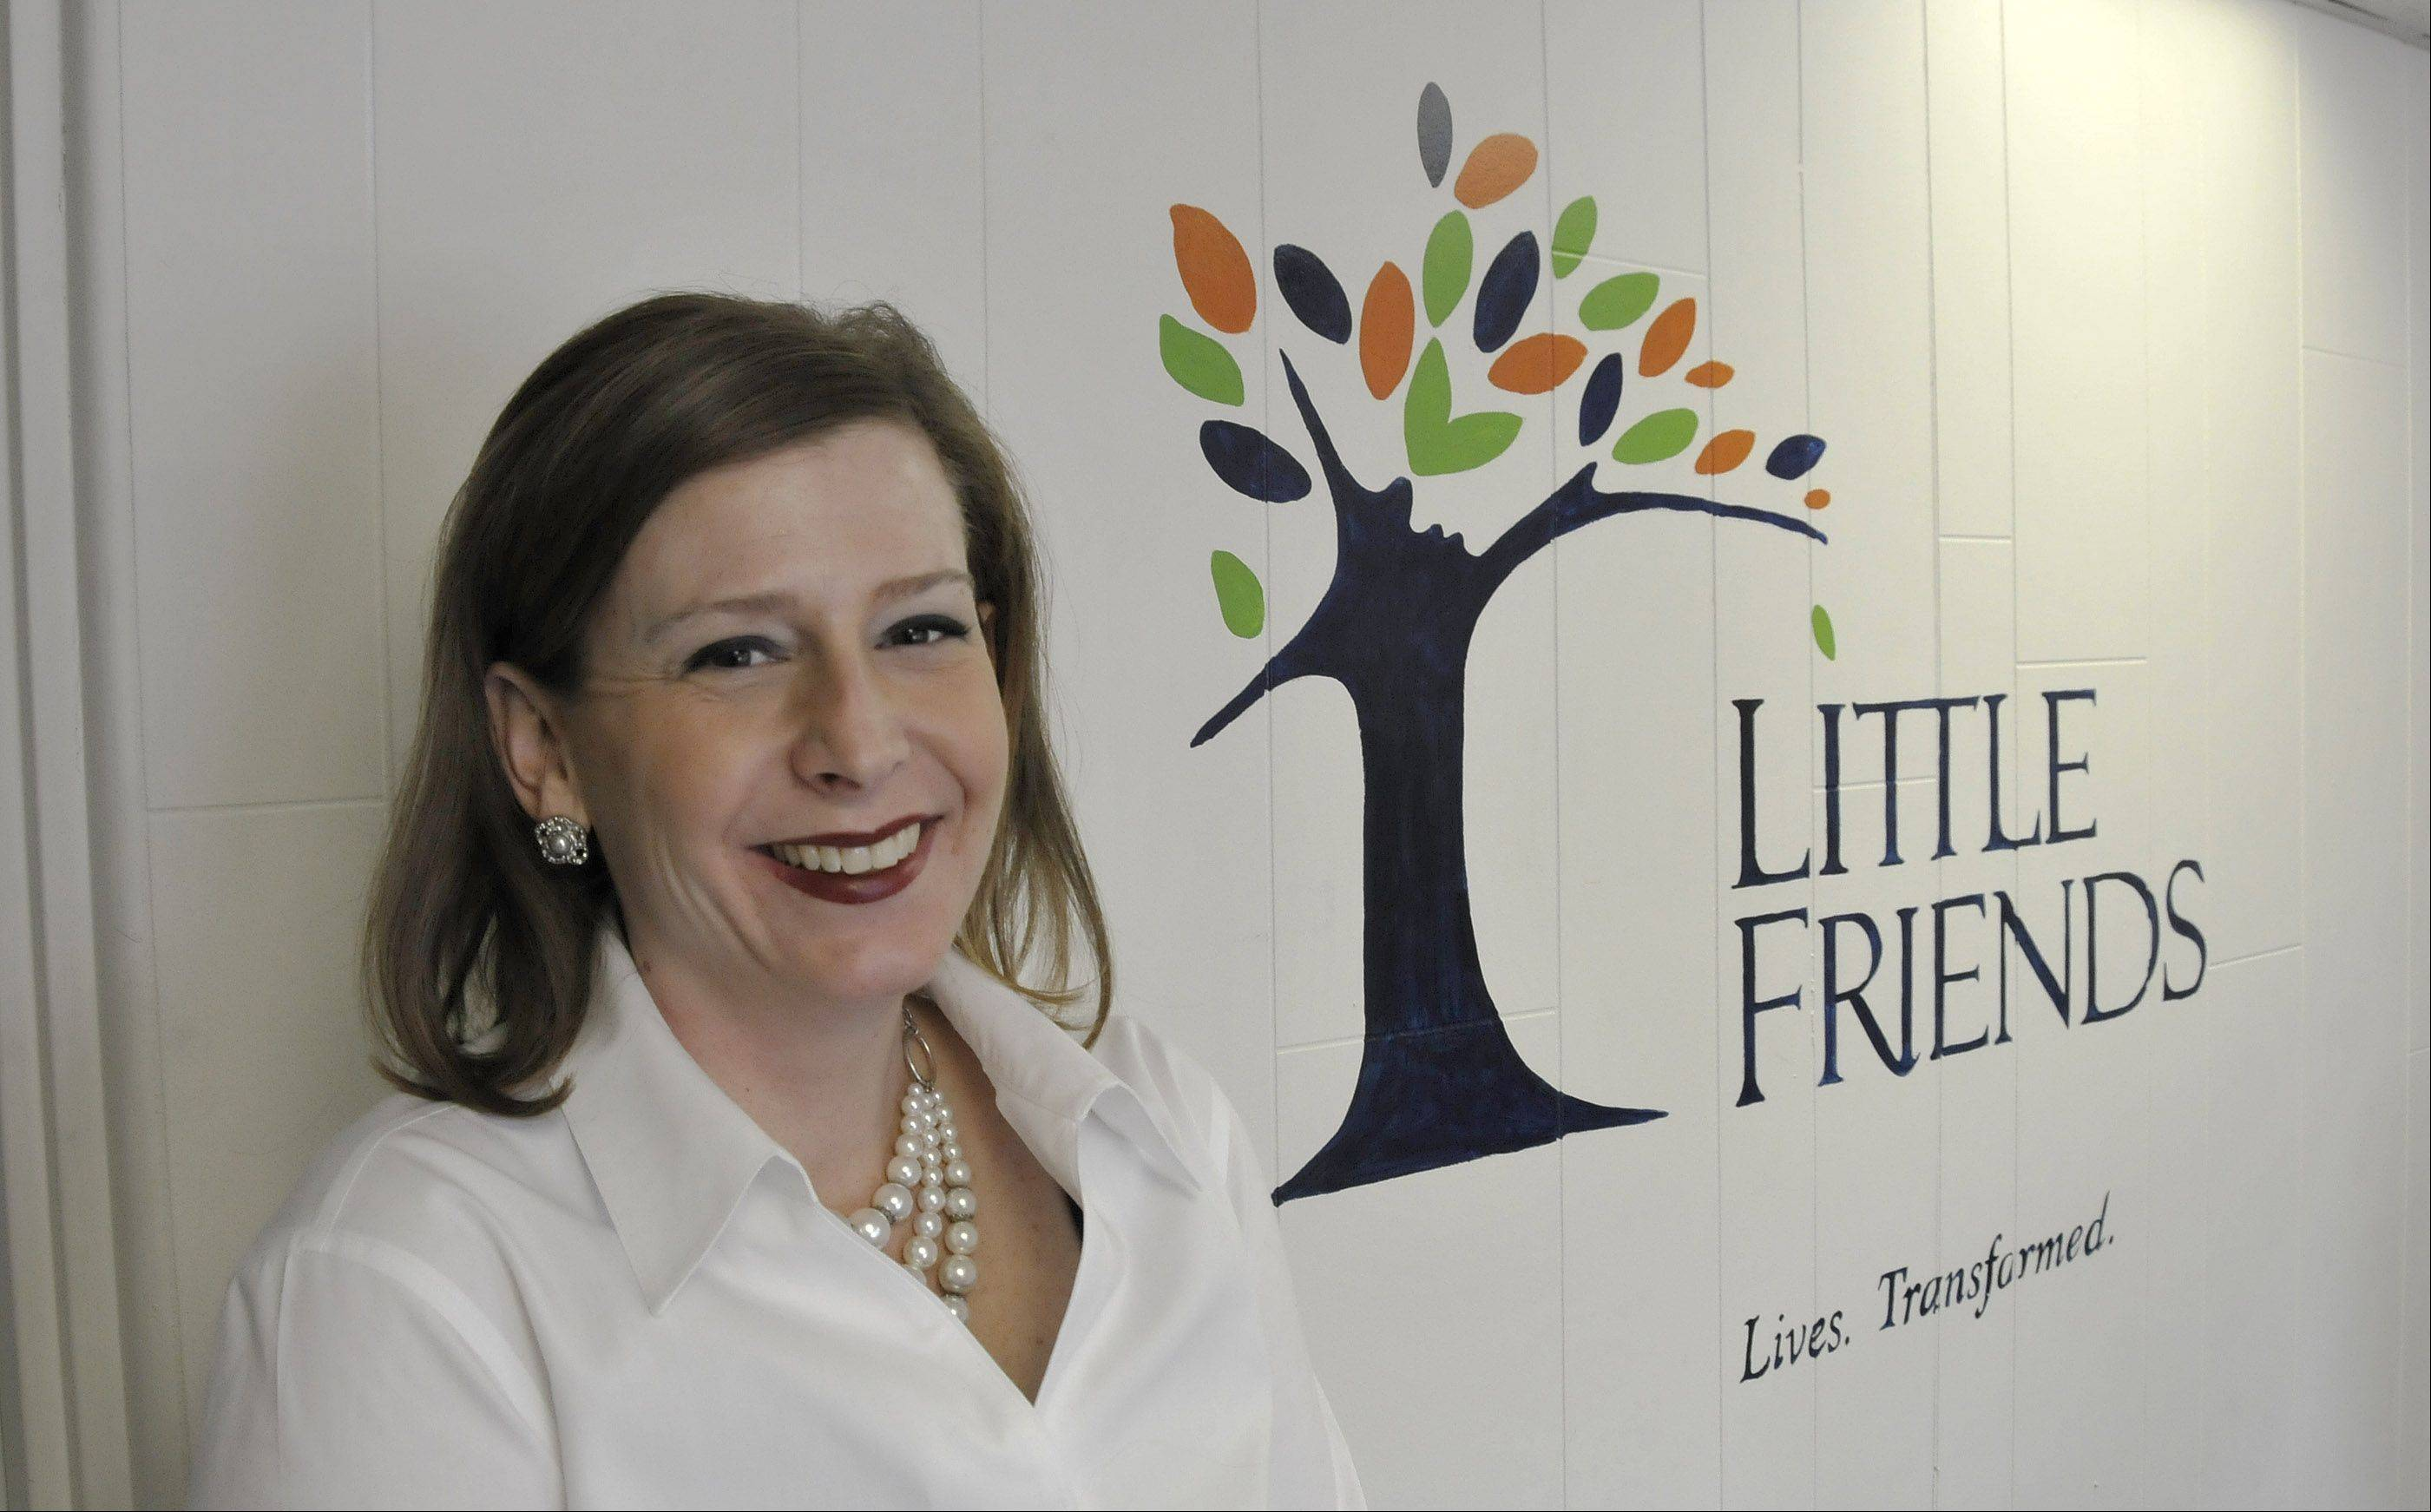 Naperville native Kristi Landorf became CEO and president of Little Friends last summer after eight years wit